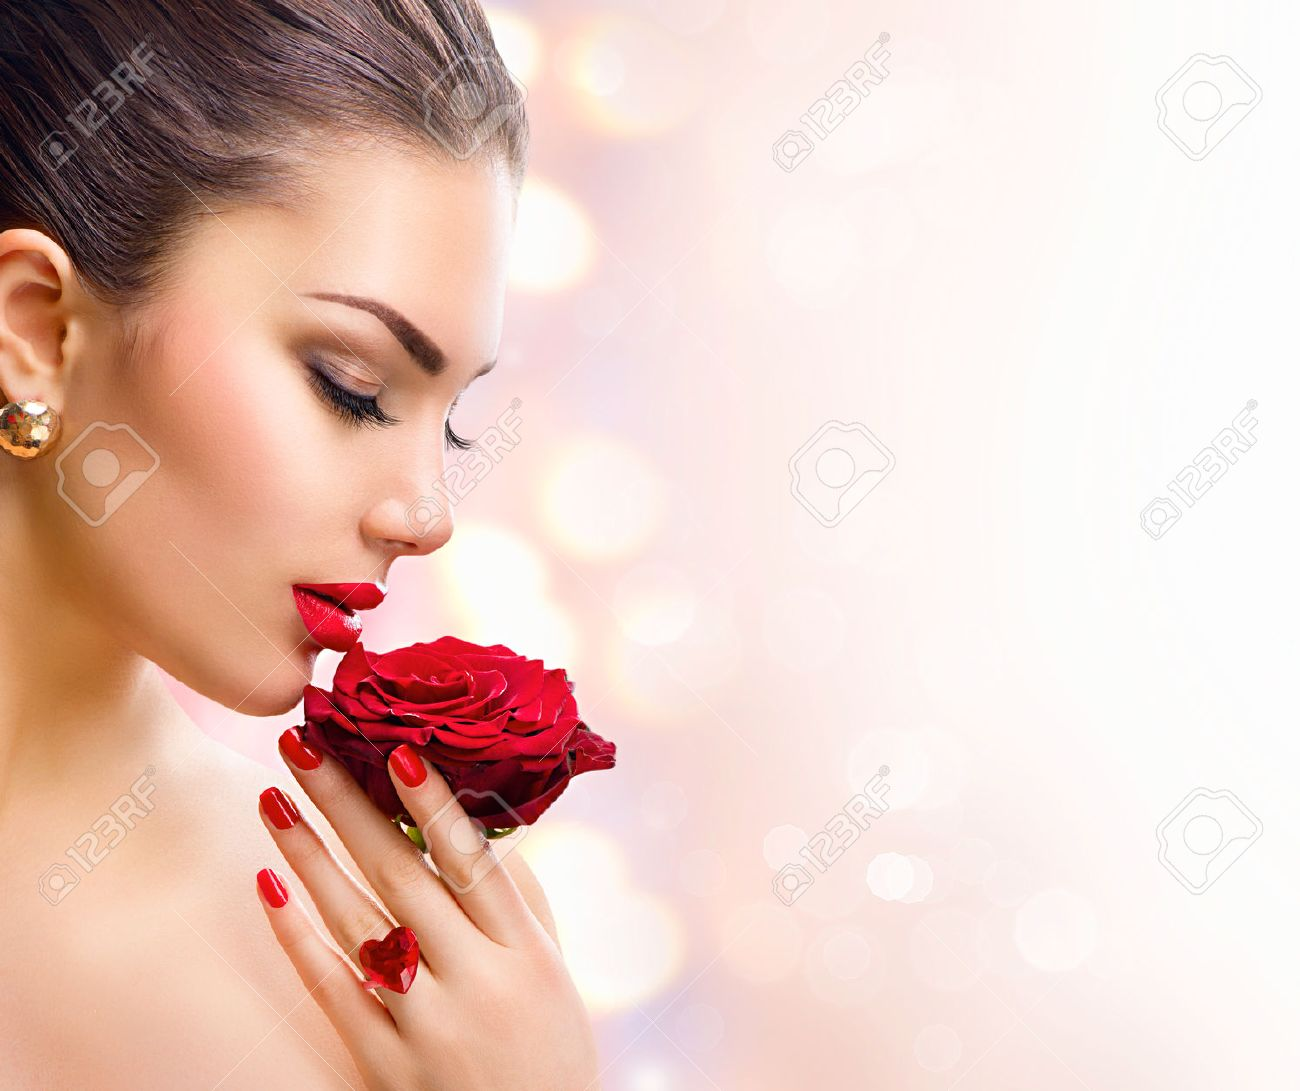 Fashion model girl face portrait with red rose in her hand - 52316179